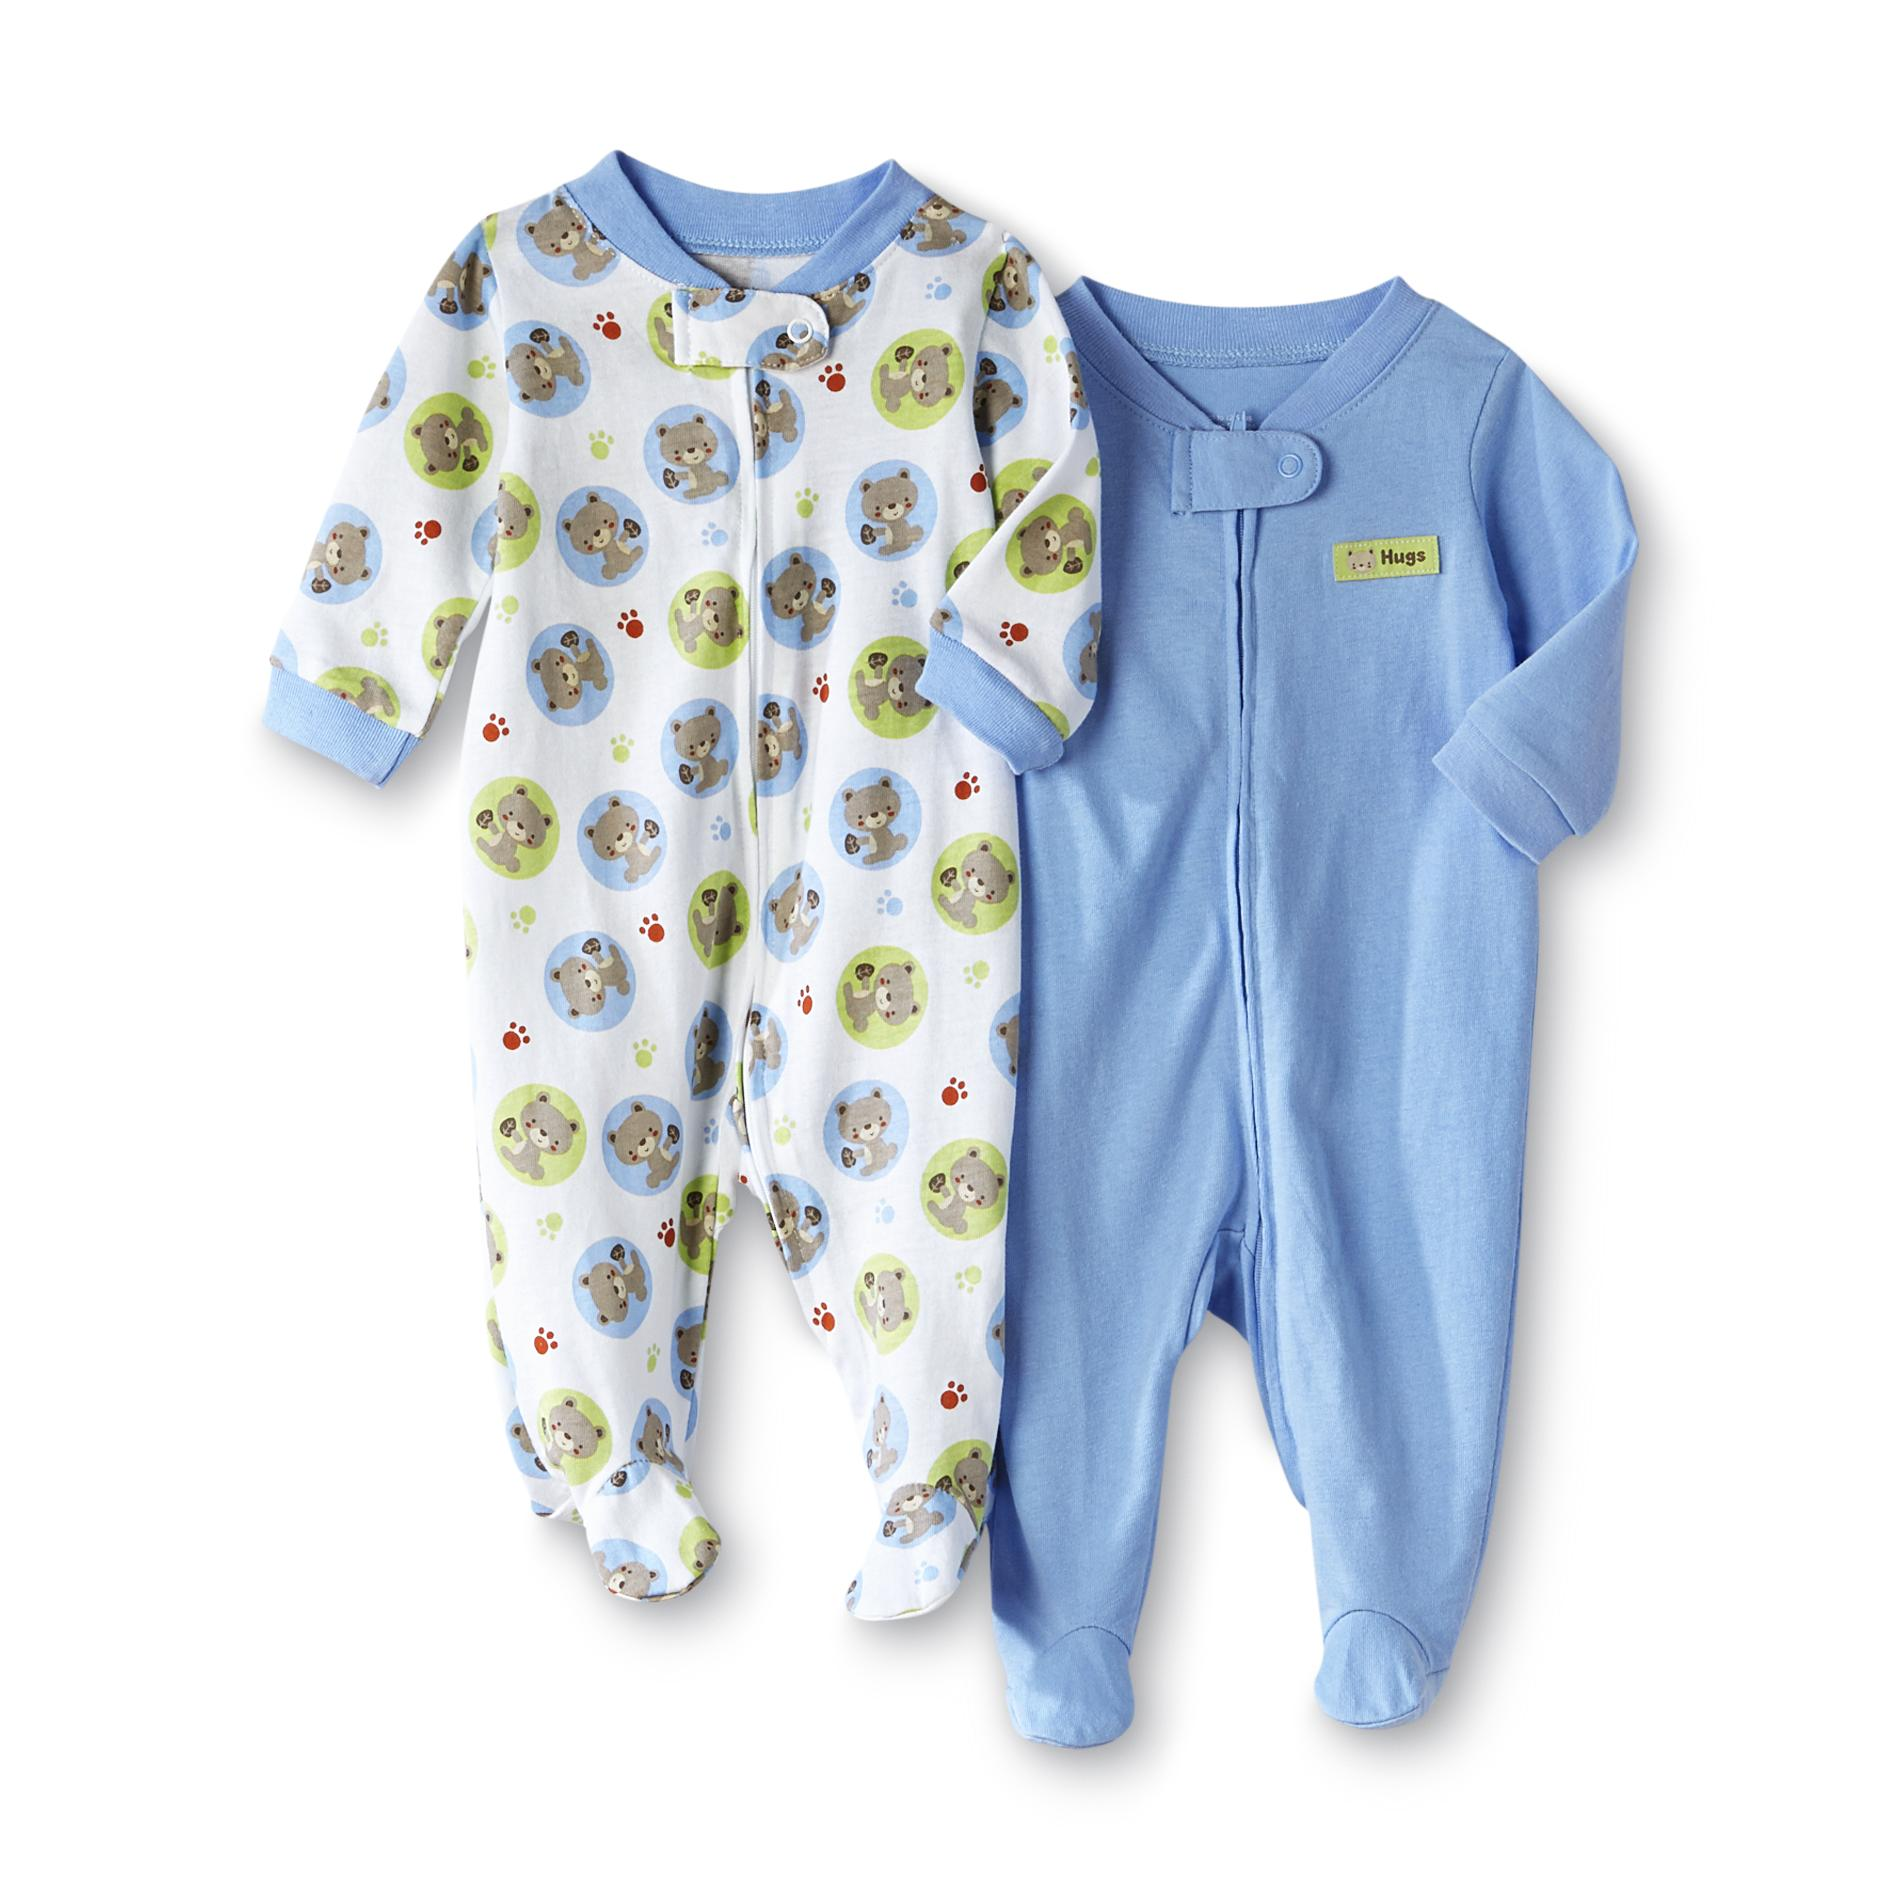 Infant Boy's 2-Pack Sleep 'N Plays - Bears &